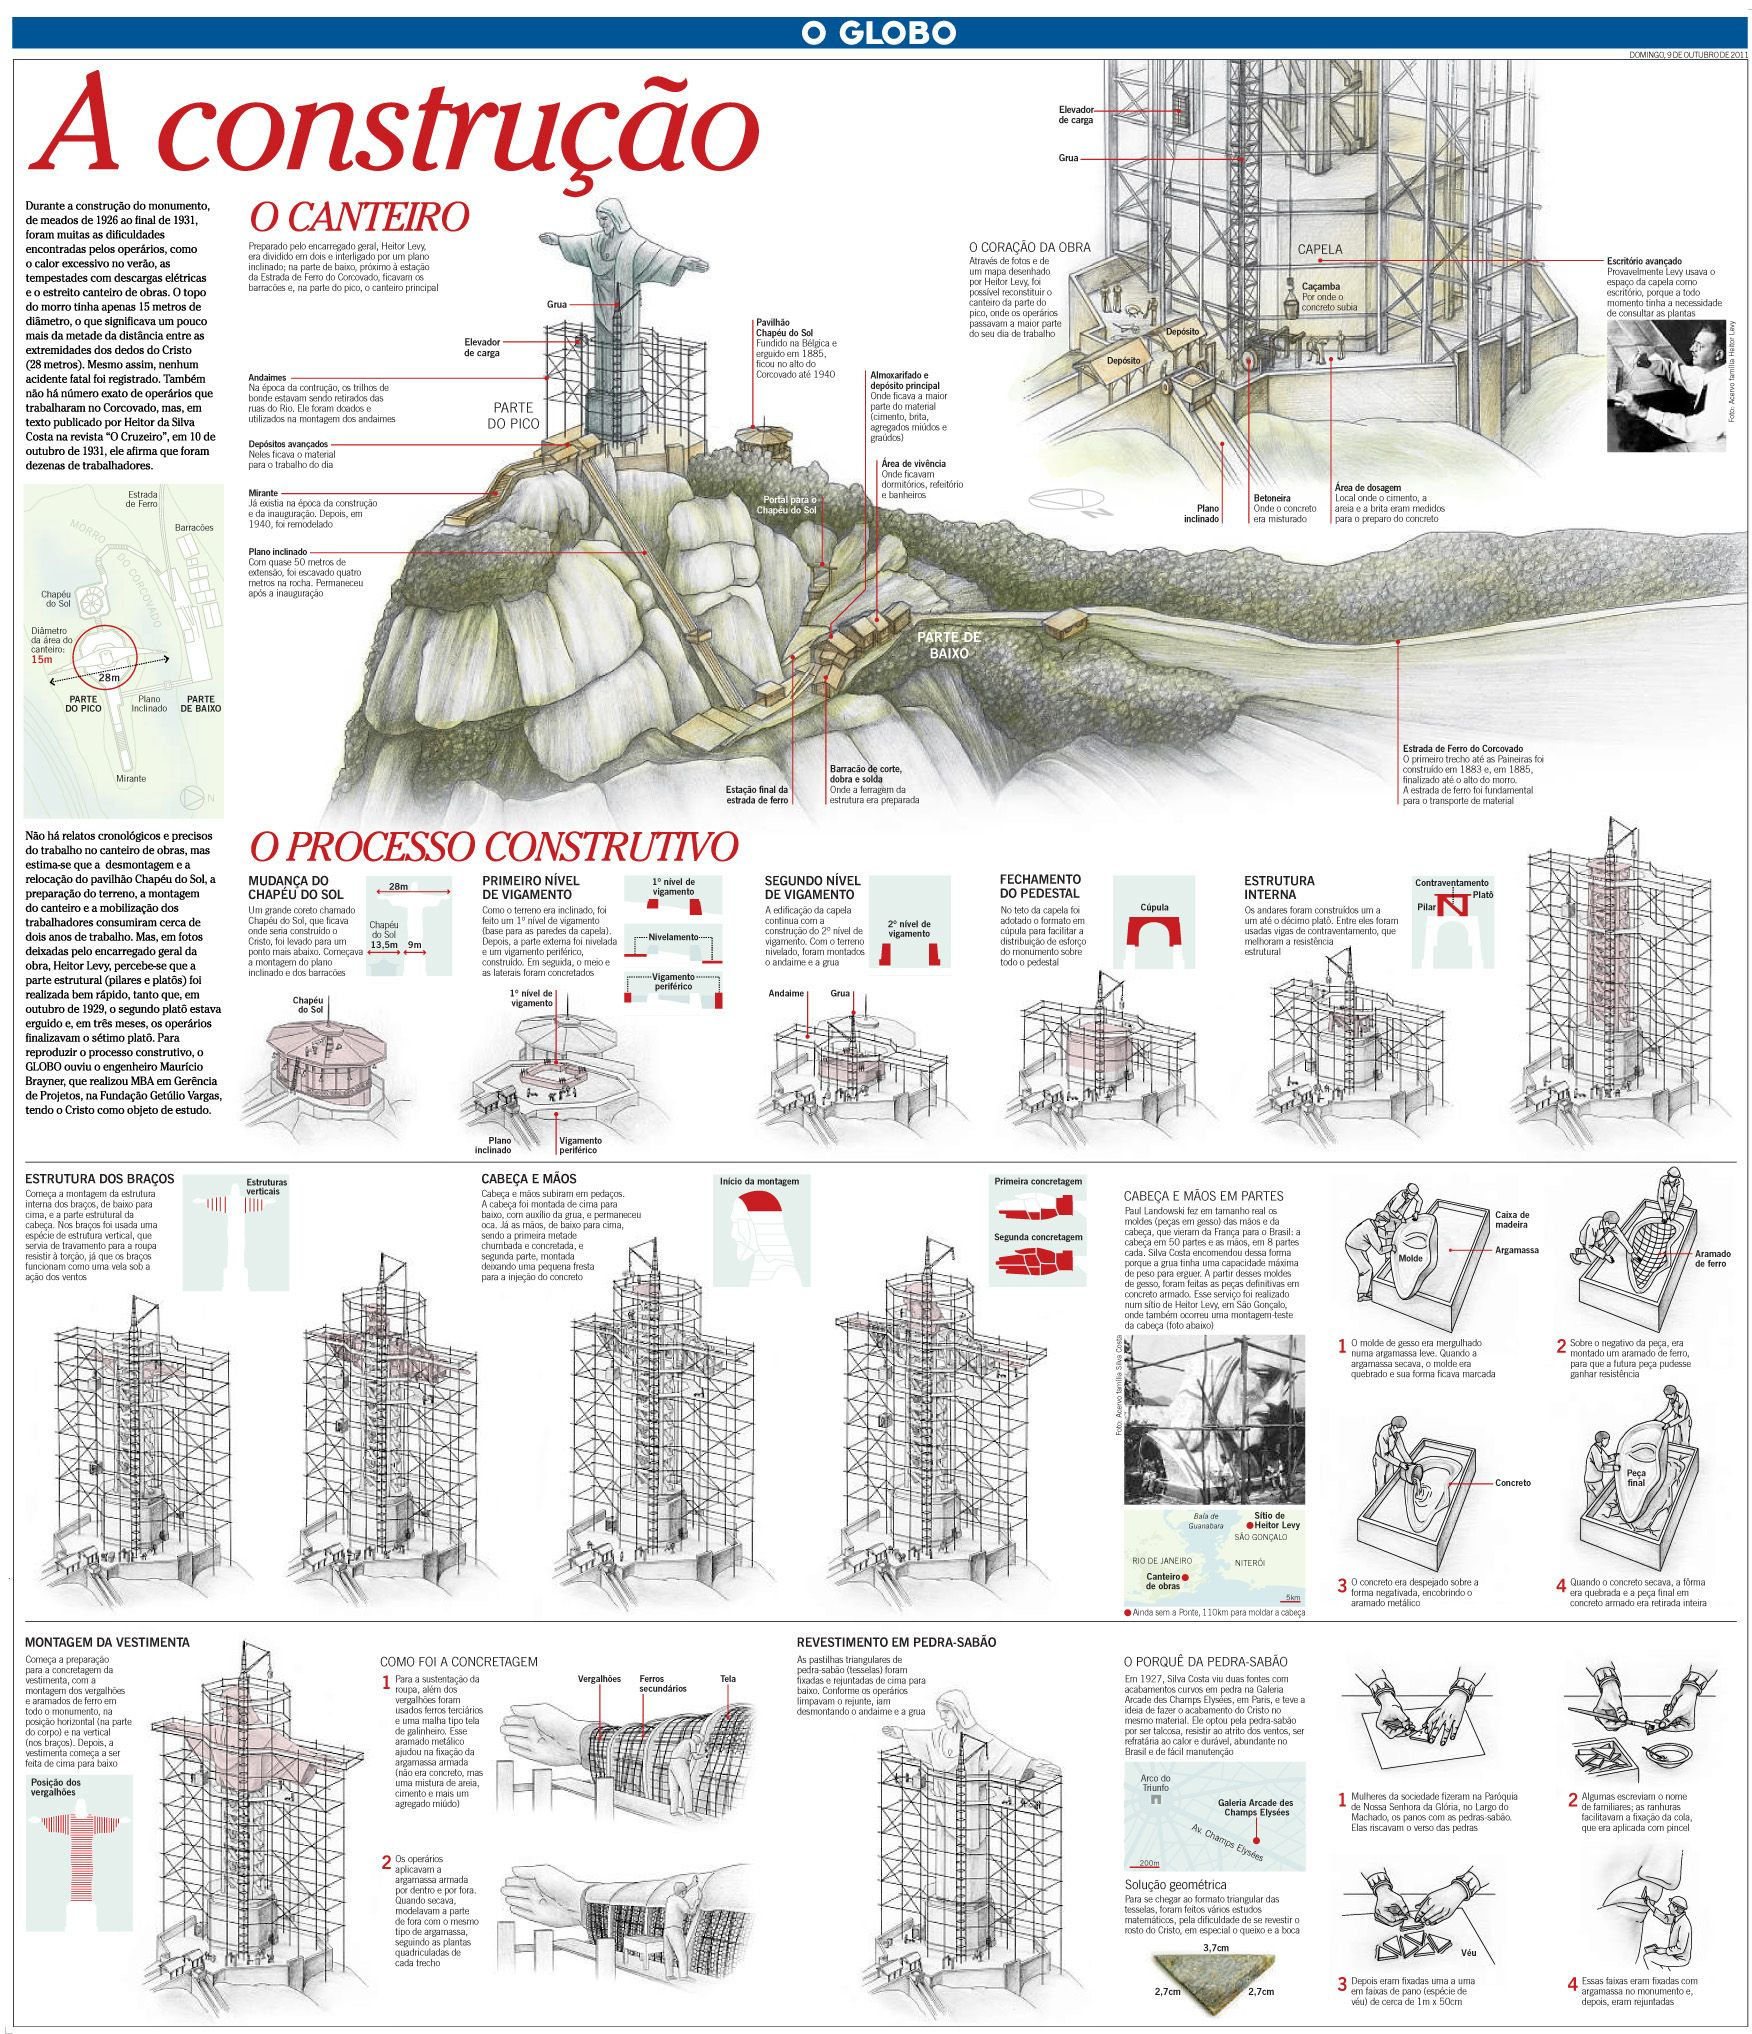 Infográfico sobre a construção do Cristo Redentor. Infografía sobre la construcción del Cristo Redentor. Infographic about the construction of Christ the Redeemer